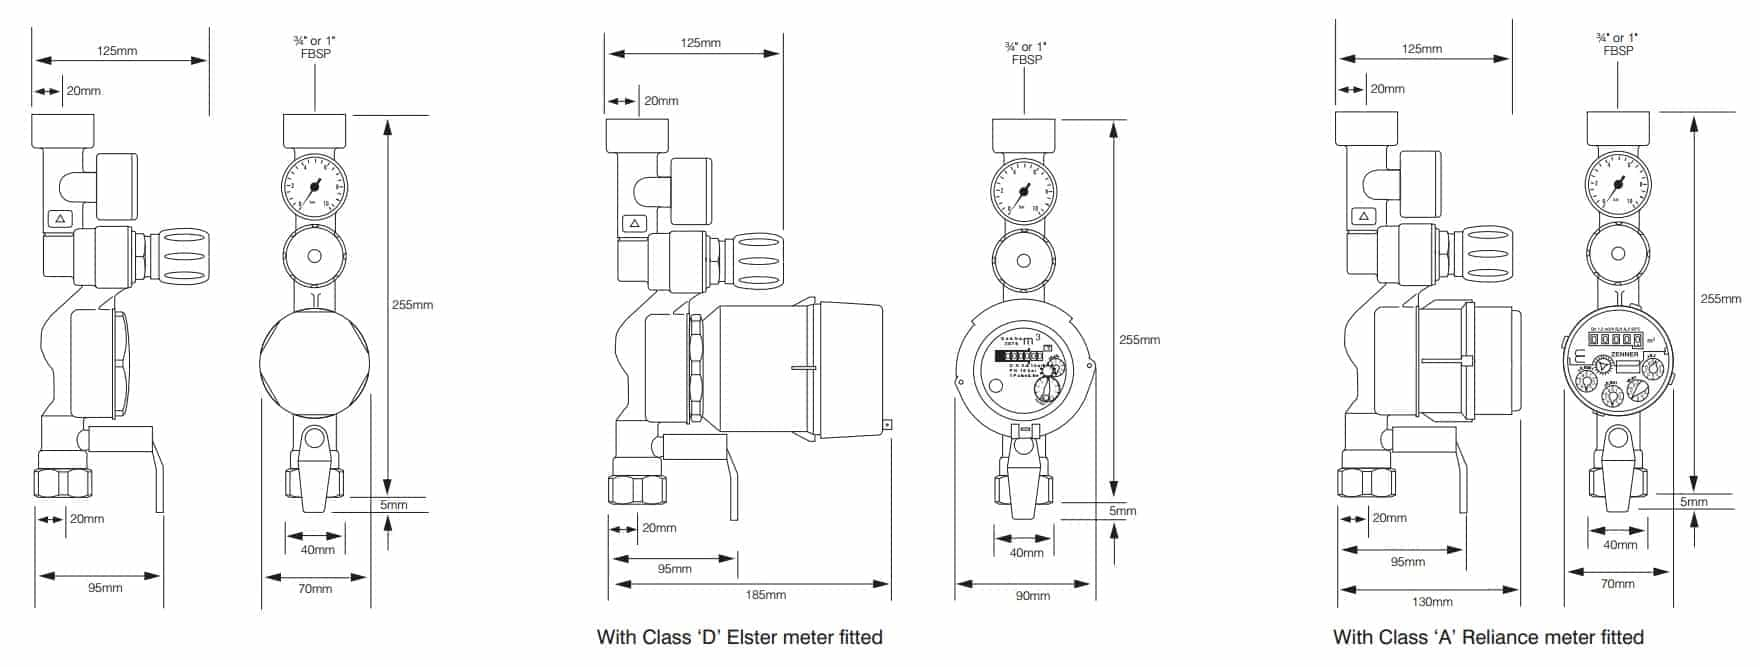 Reliance Water Controls Tenant Valves - Product Dimensions